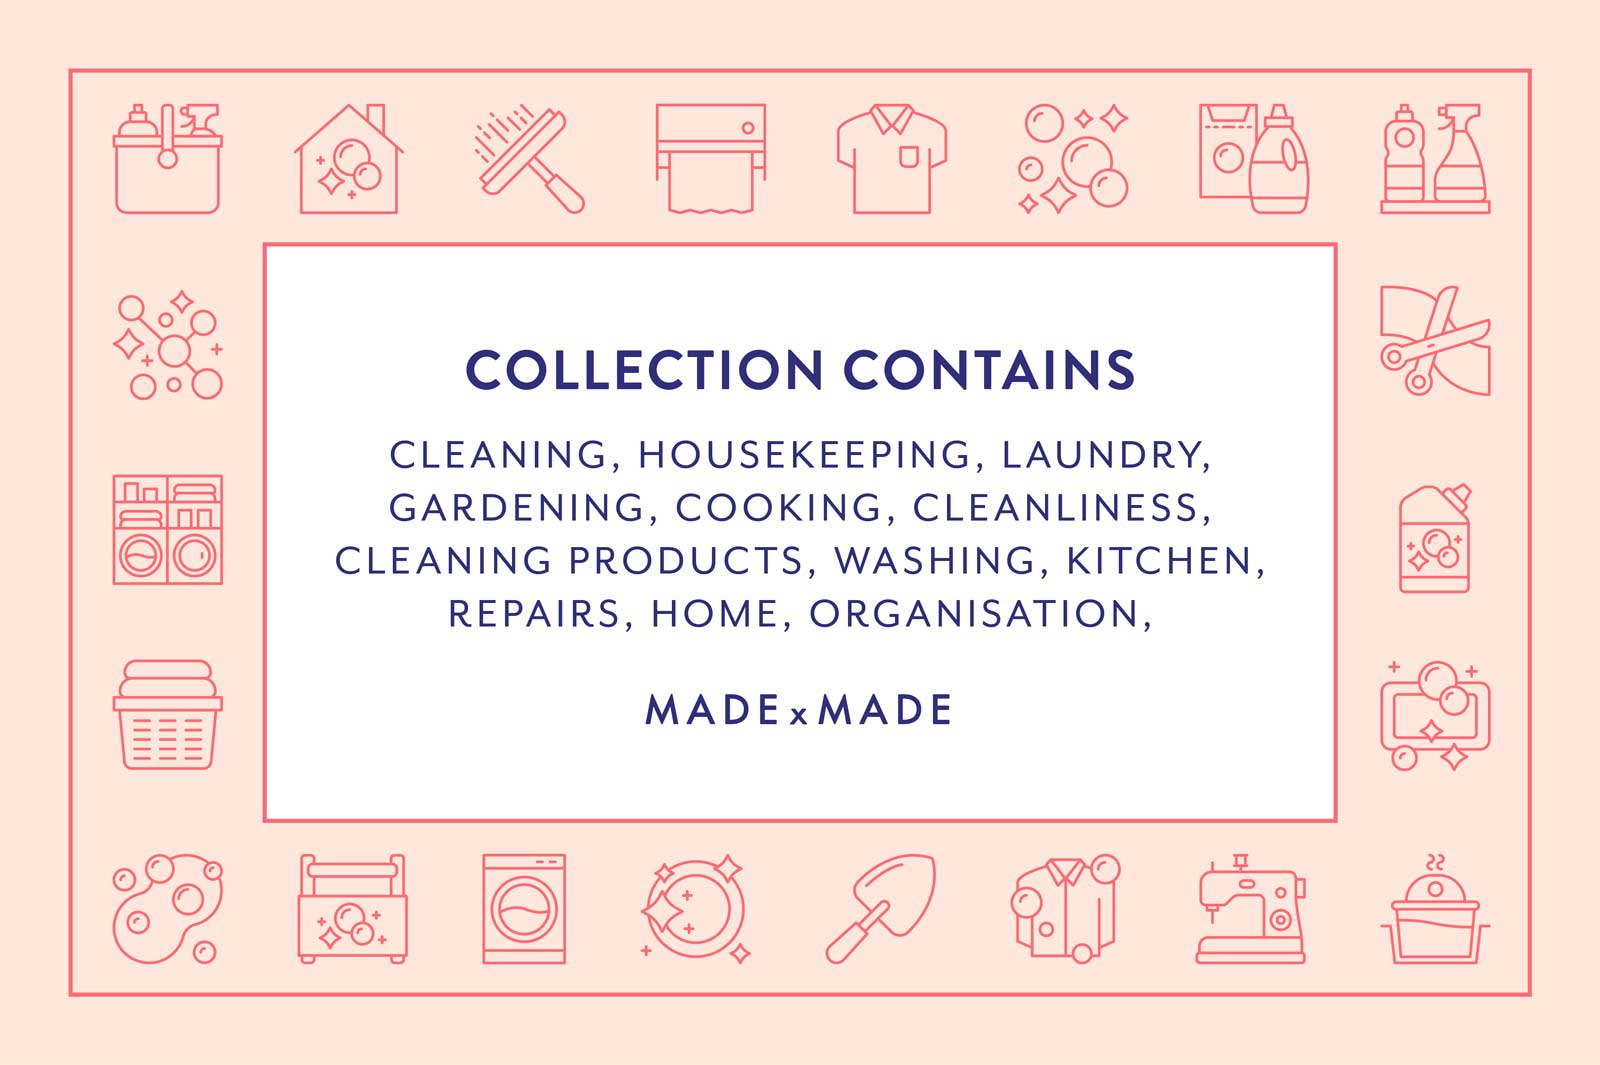 made x made icons housework